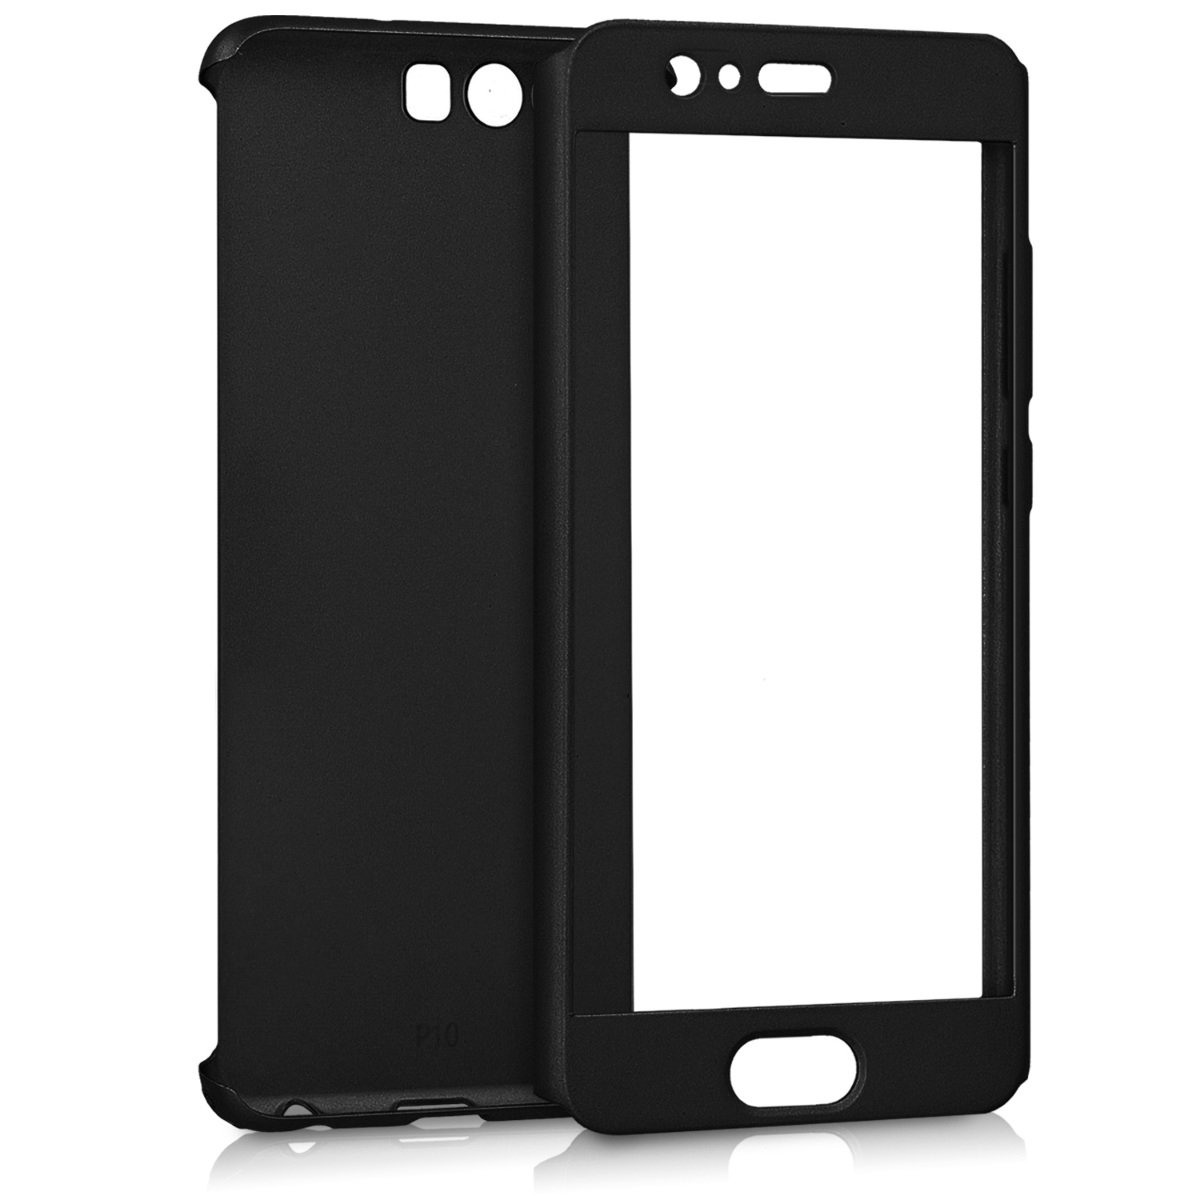 pretty nice 2d207 befbc Amazon.com: kwmobile Cover for Huawei P10 - Shockproof Protective ...